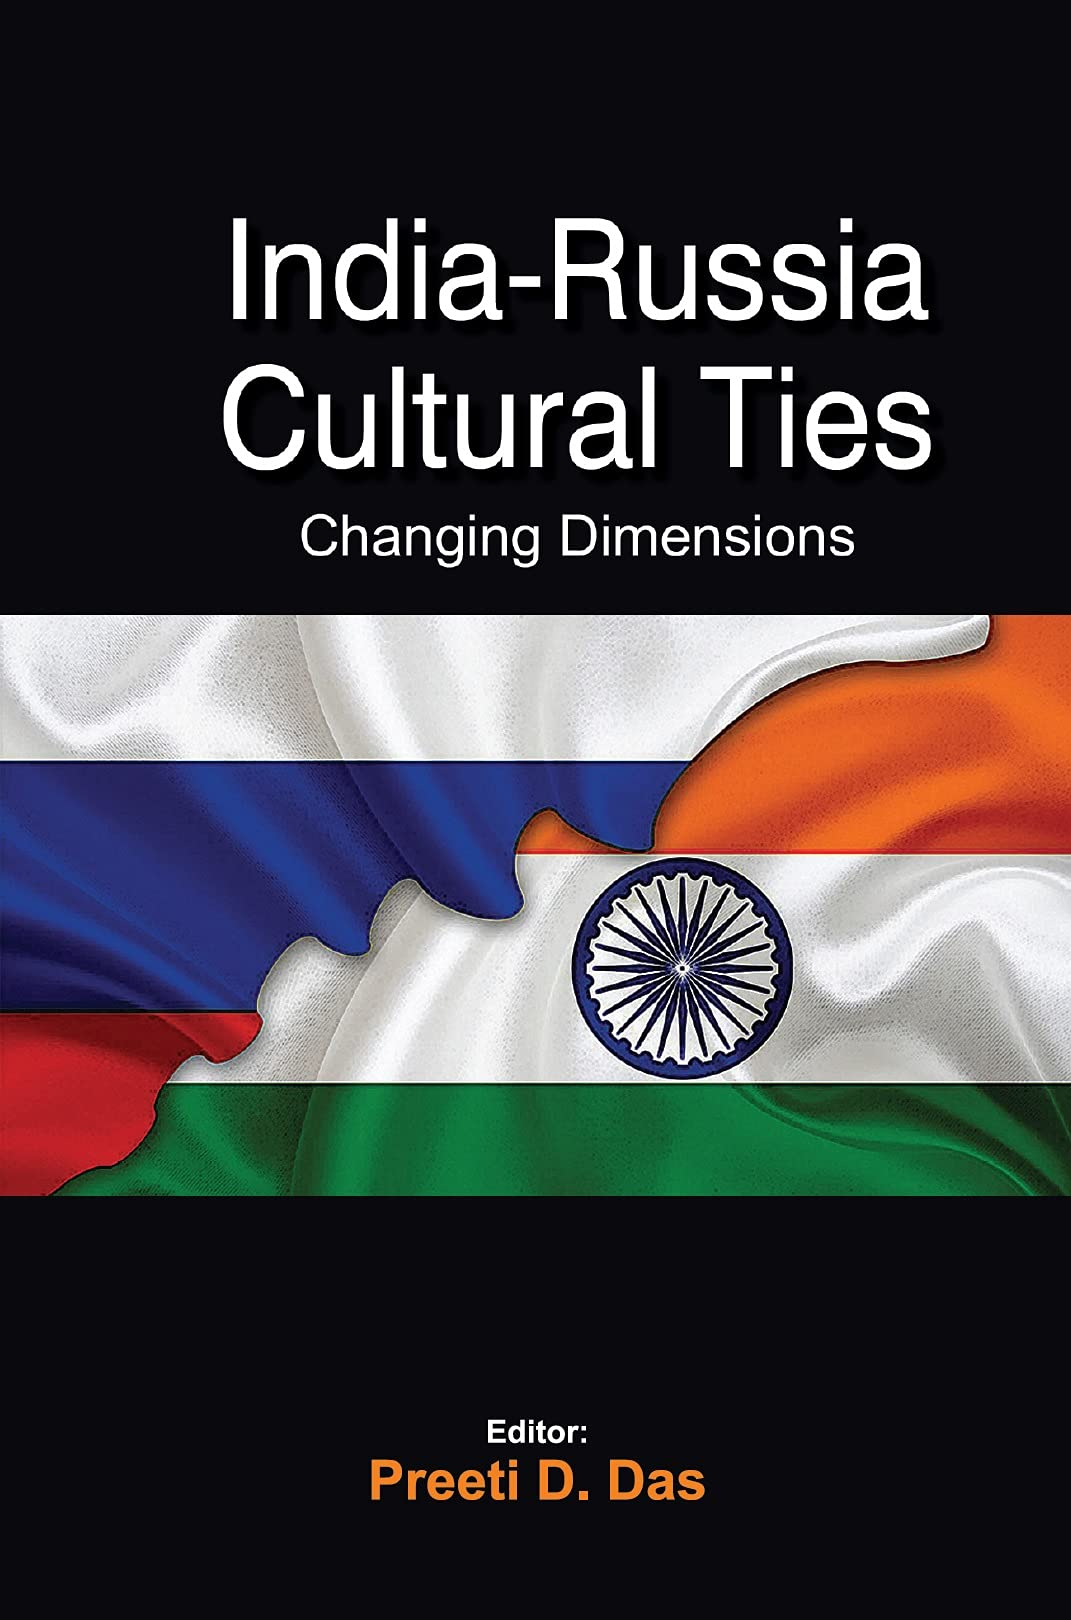 India-Russia Cultural Ties: Changing Dimensions